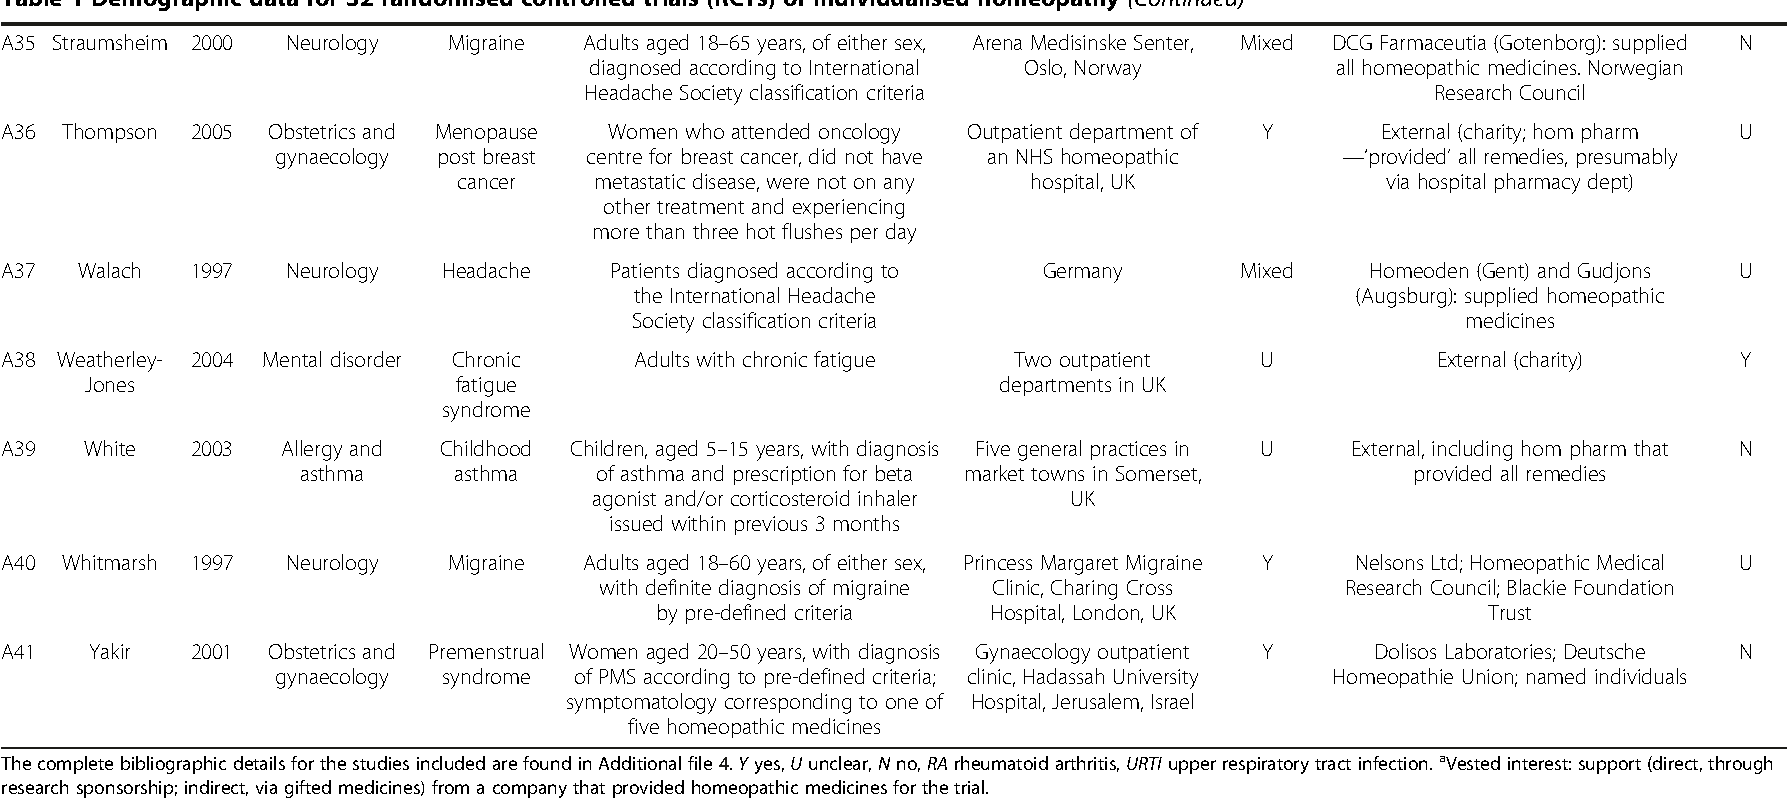 Table 1 Demographic data for 32 randomised controlled trials (RCTs) of individualised homeopathy (Continued)